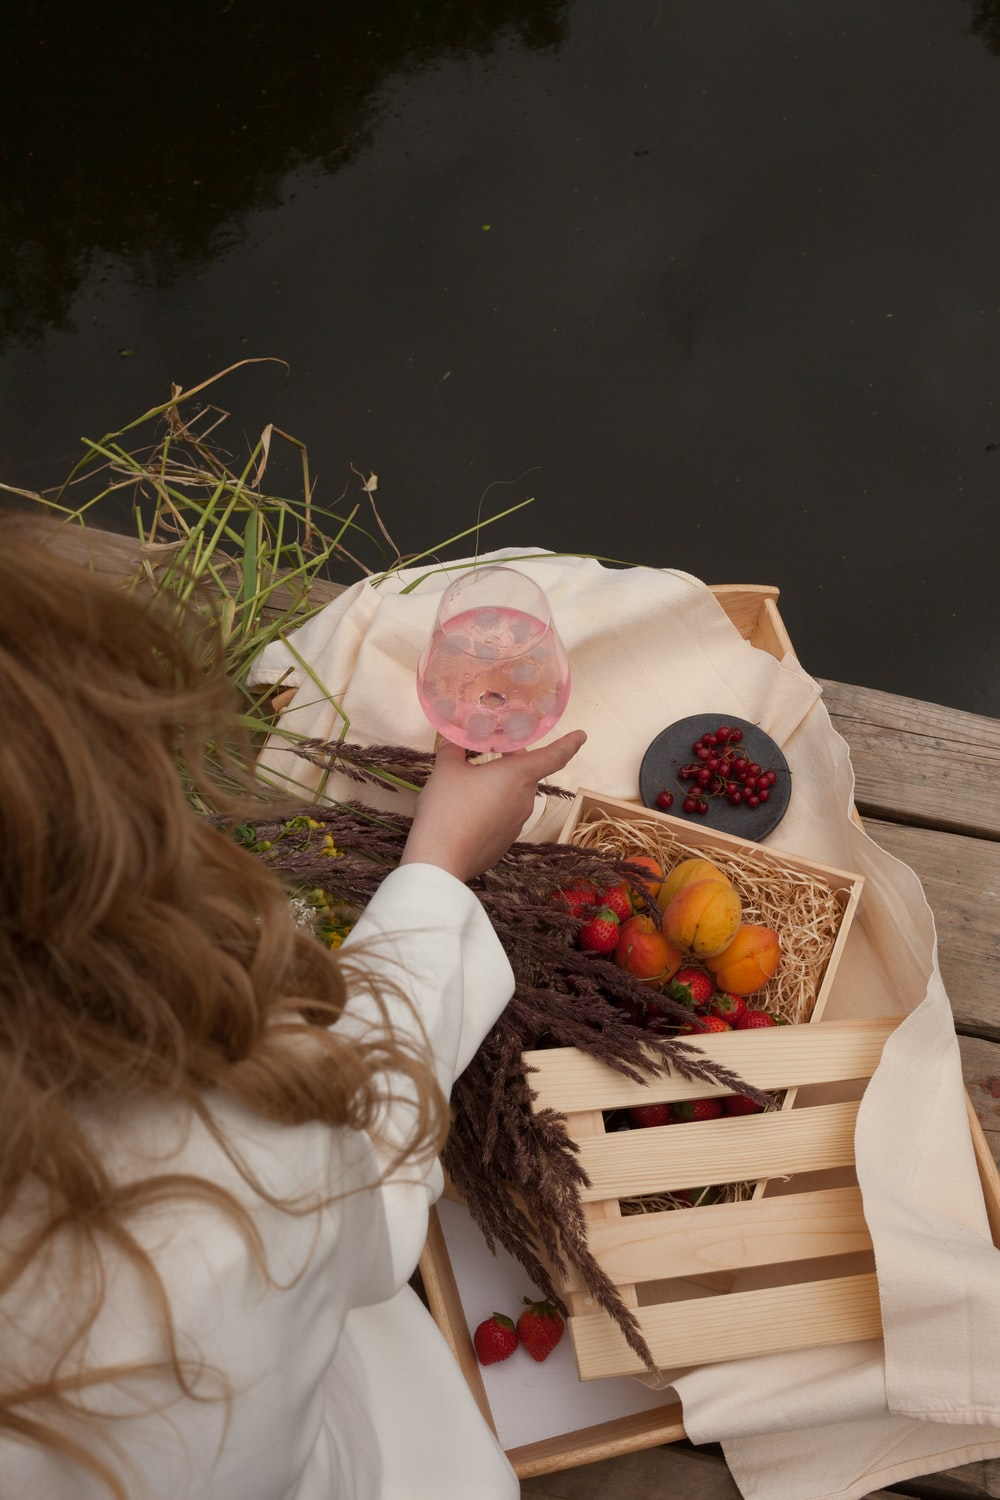 girl in white t-shirt sitting on brown wooden bench with fruits on brown wooden crate